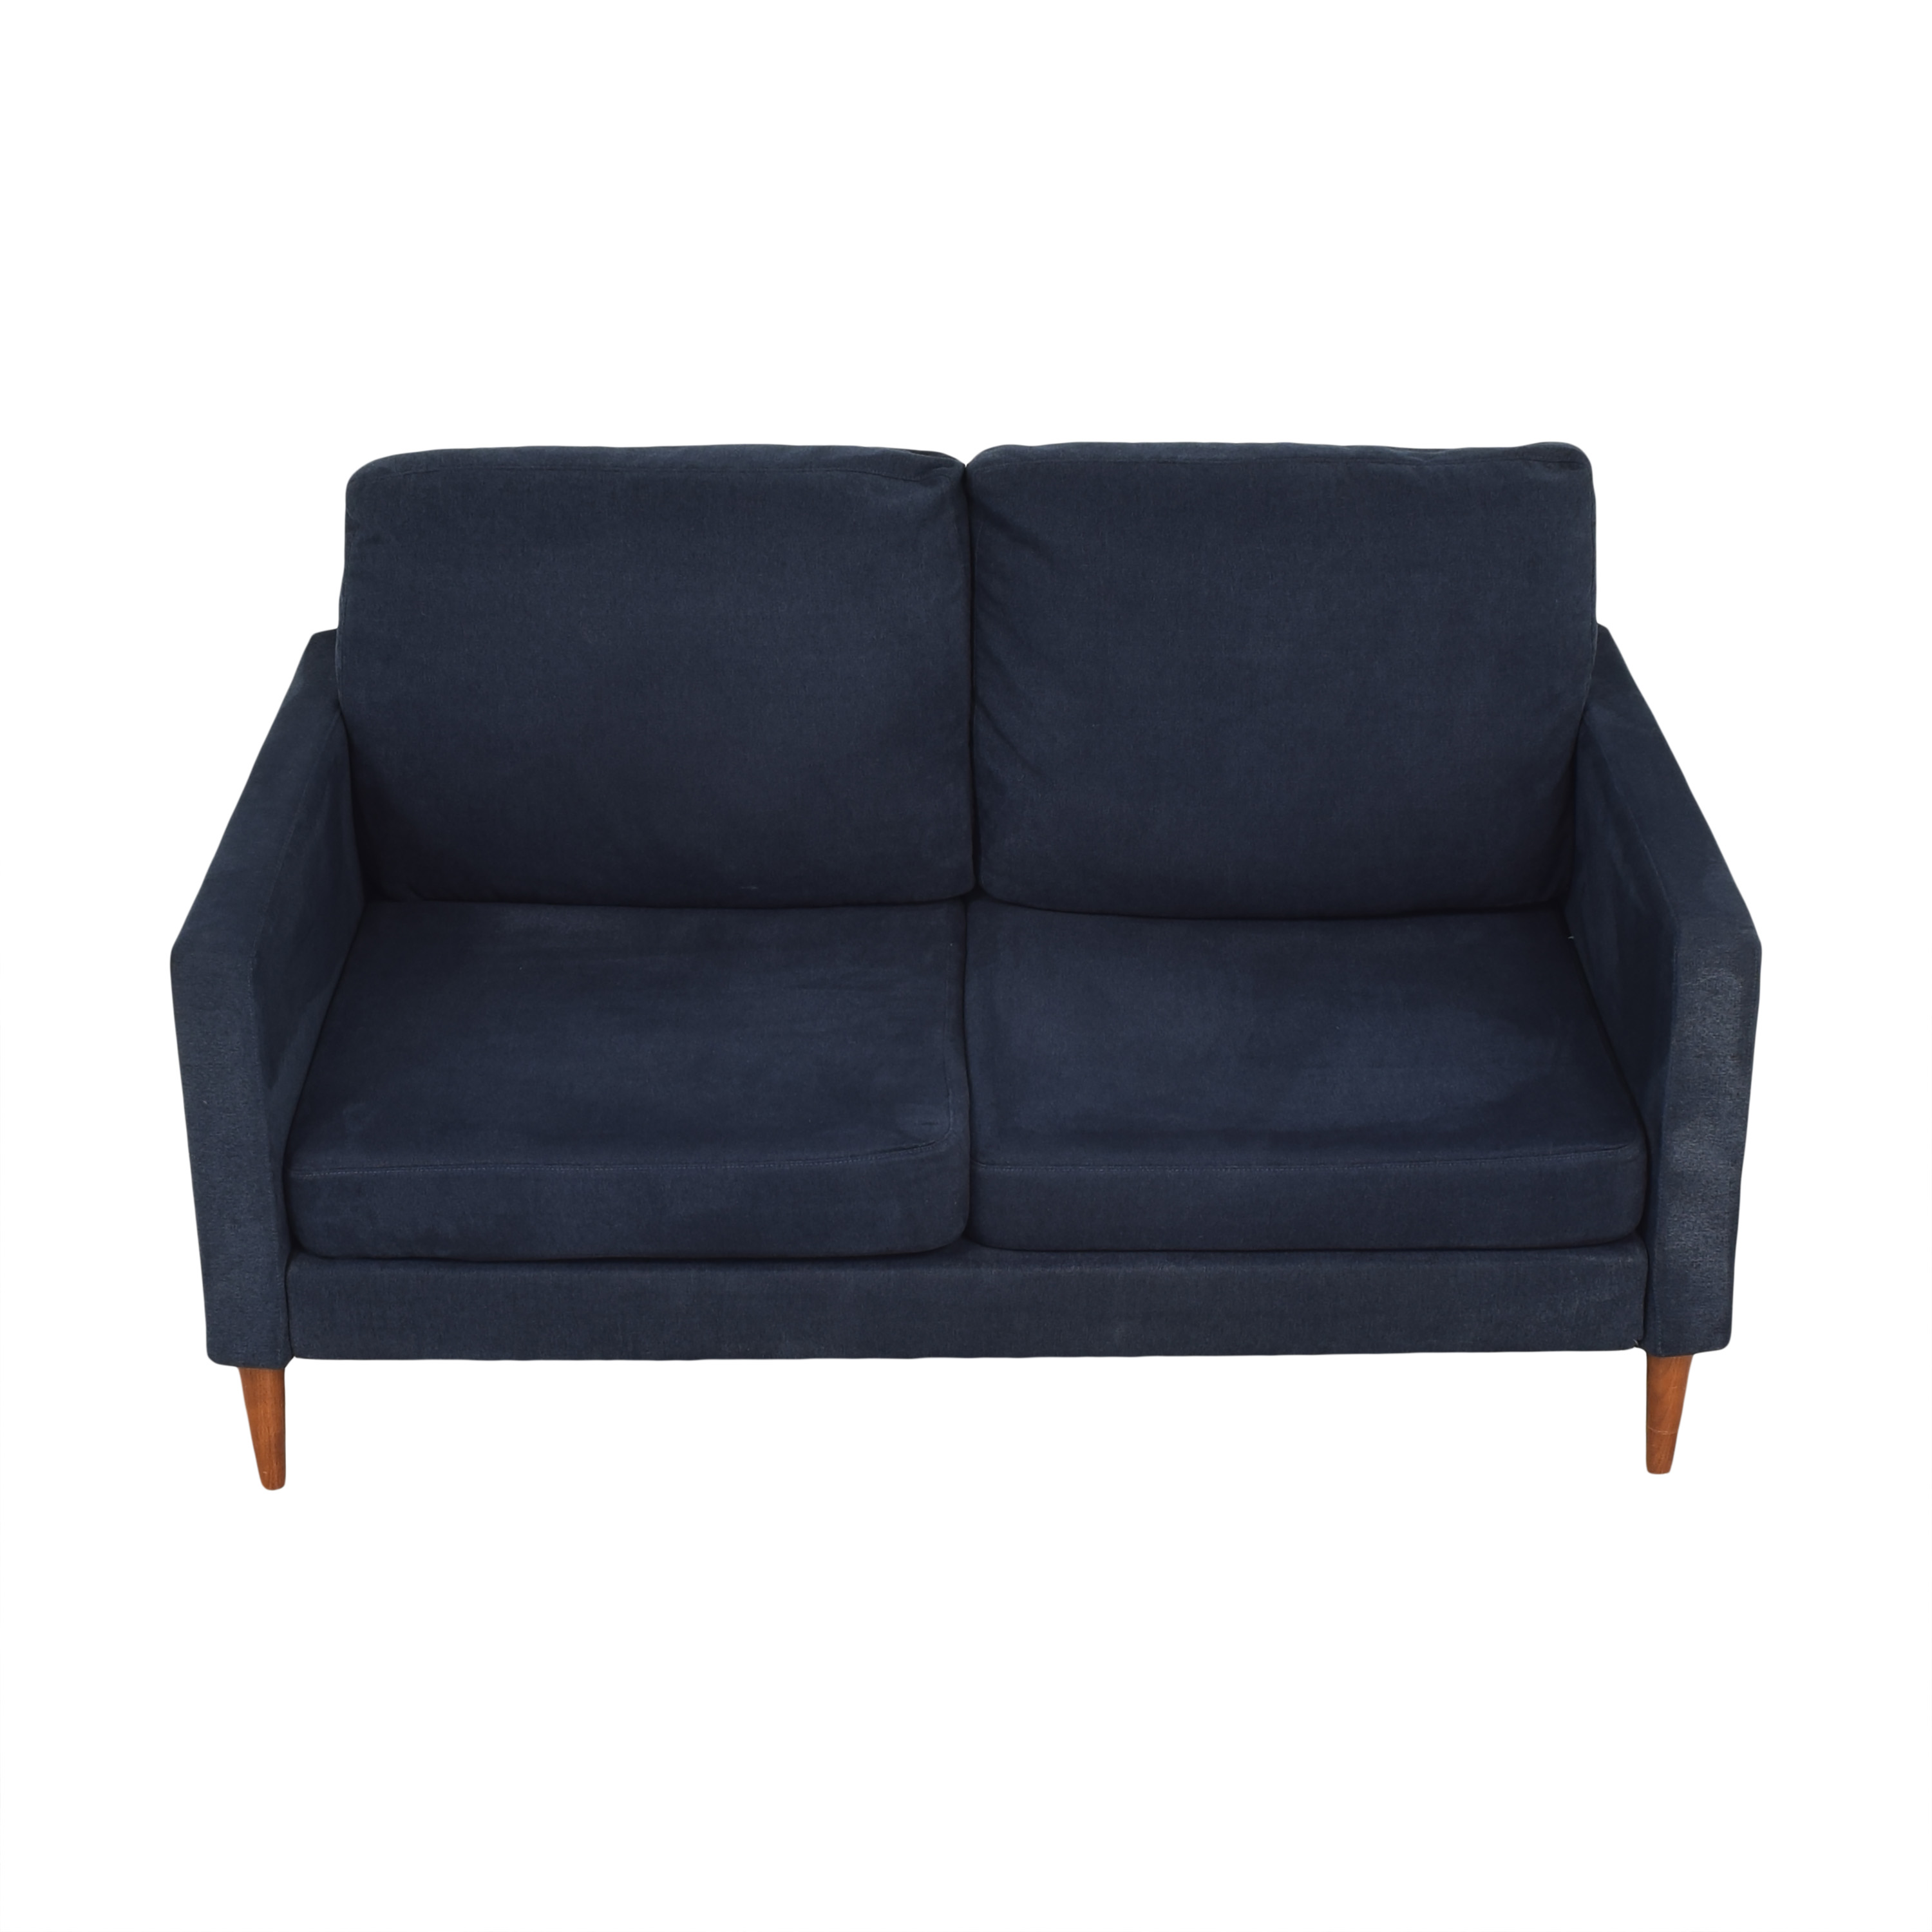 Campaign Campaign Modern Loveseat in Brushed Weave Midnight Navy